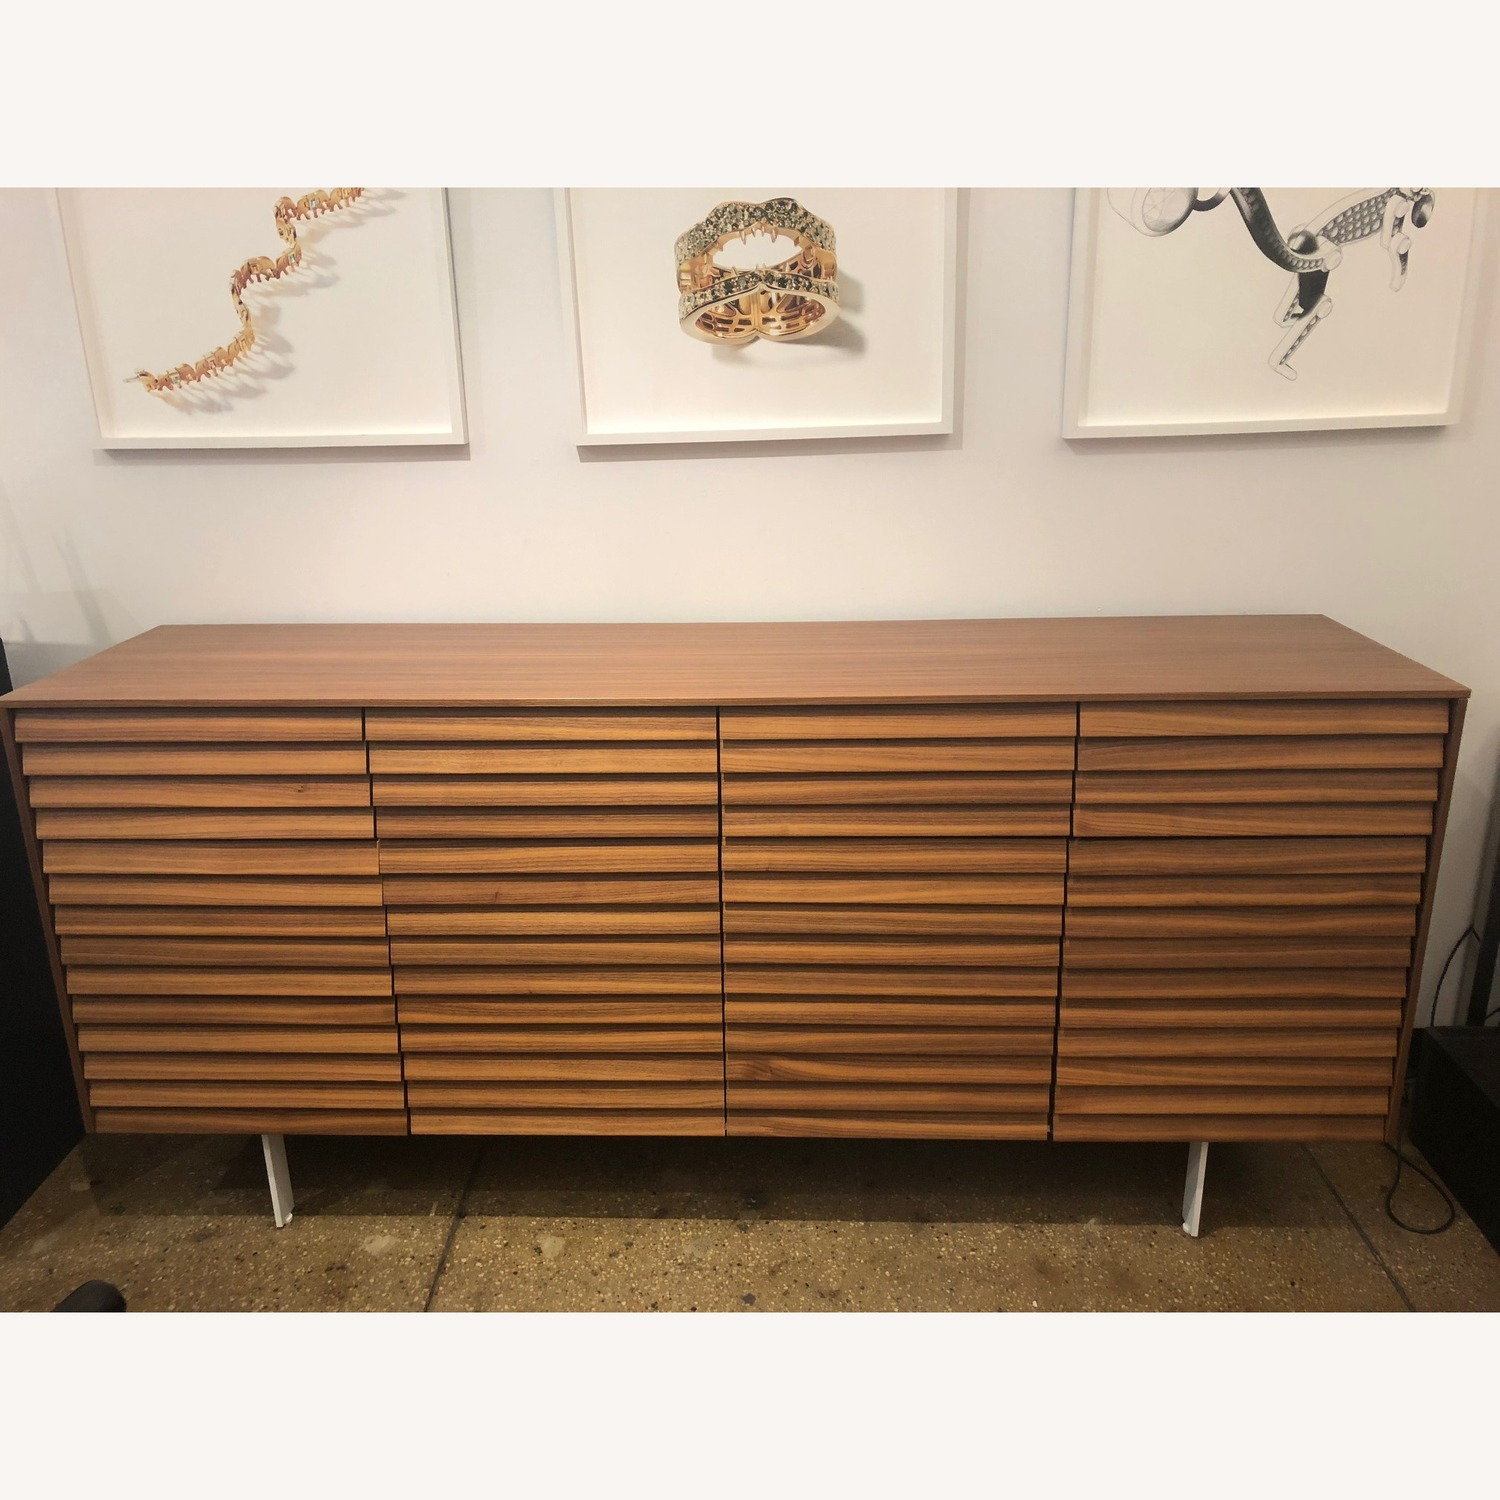 Design Within Reach Terence Woodgate Sussex Credenza - image-1